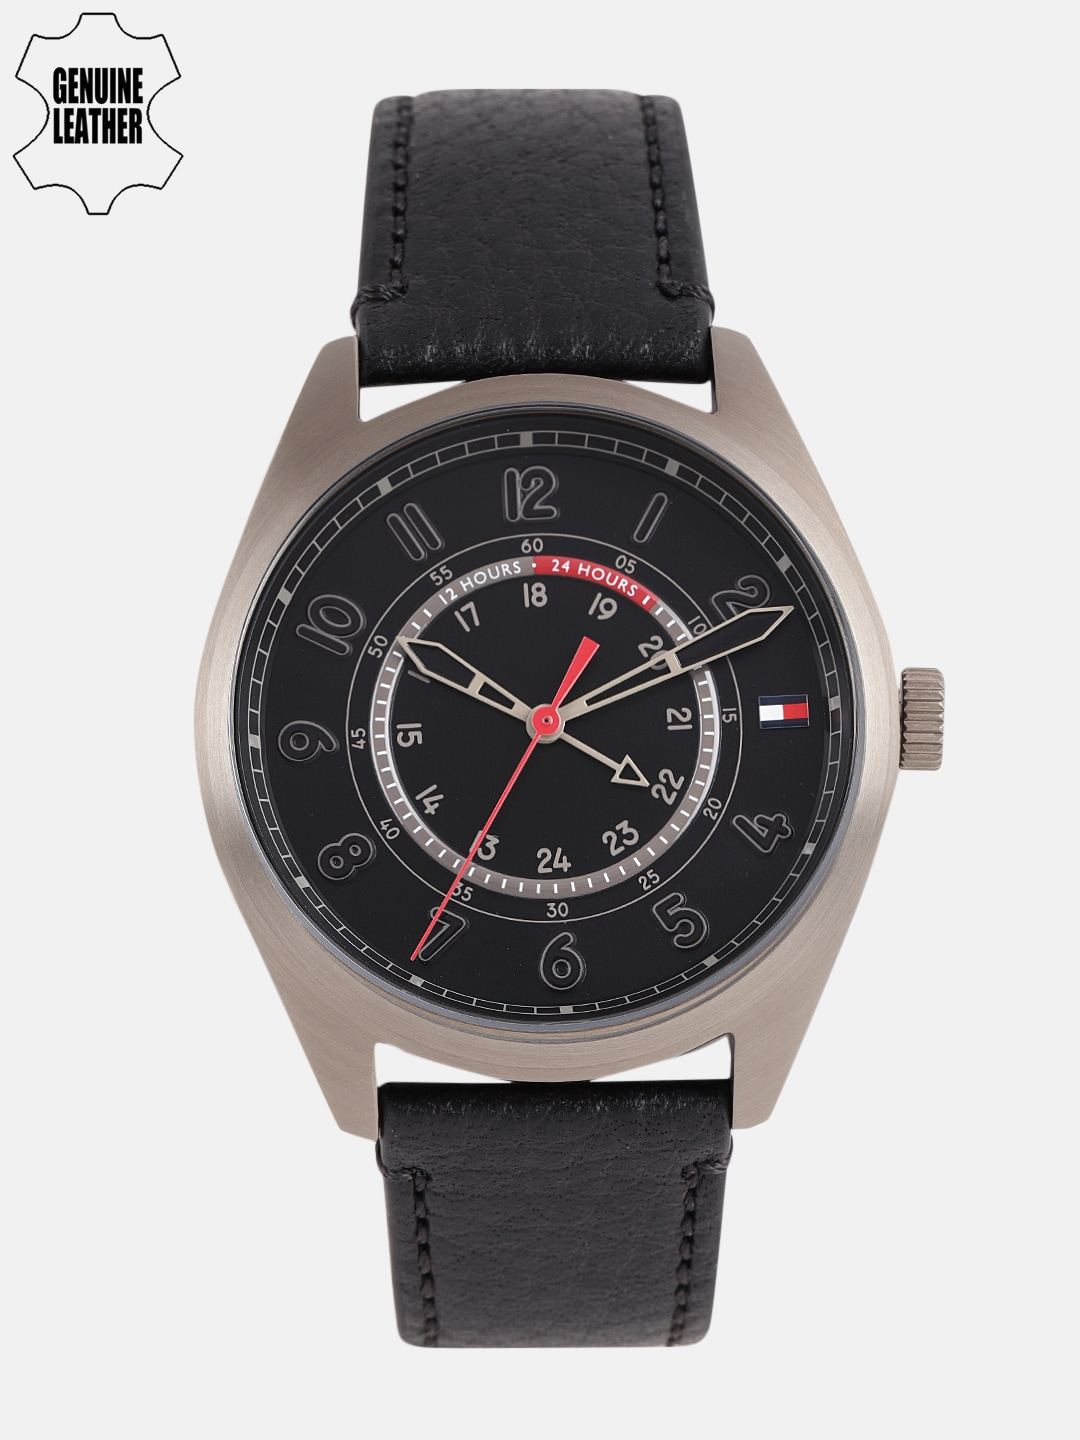 57e4c84f7a296 Tommy Hilfiger Watches - Buy Tommy Hilfiger Watch Online